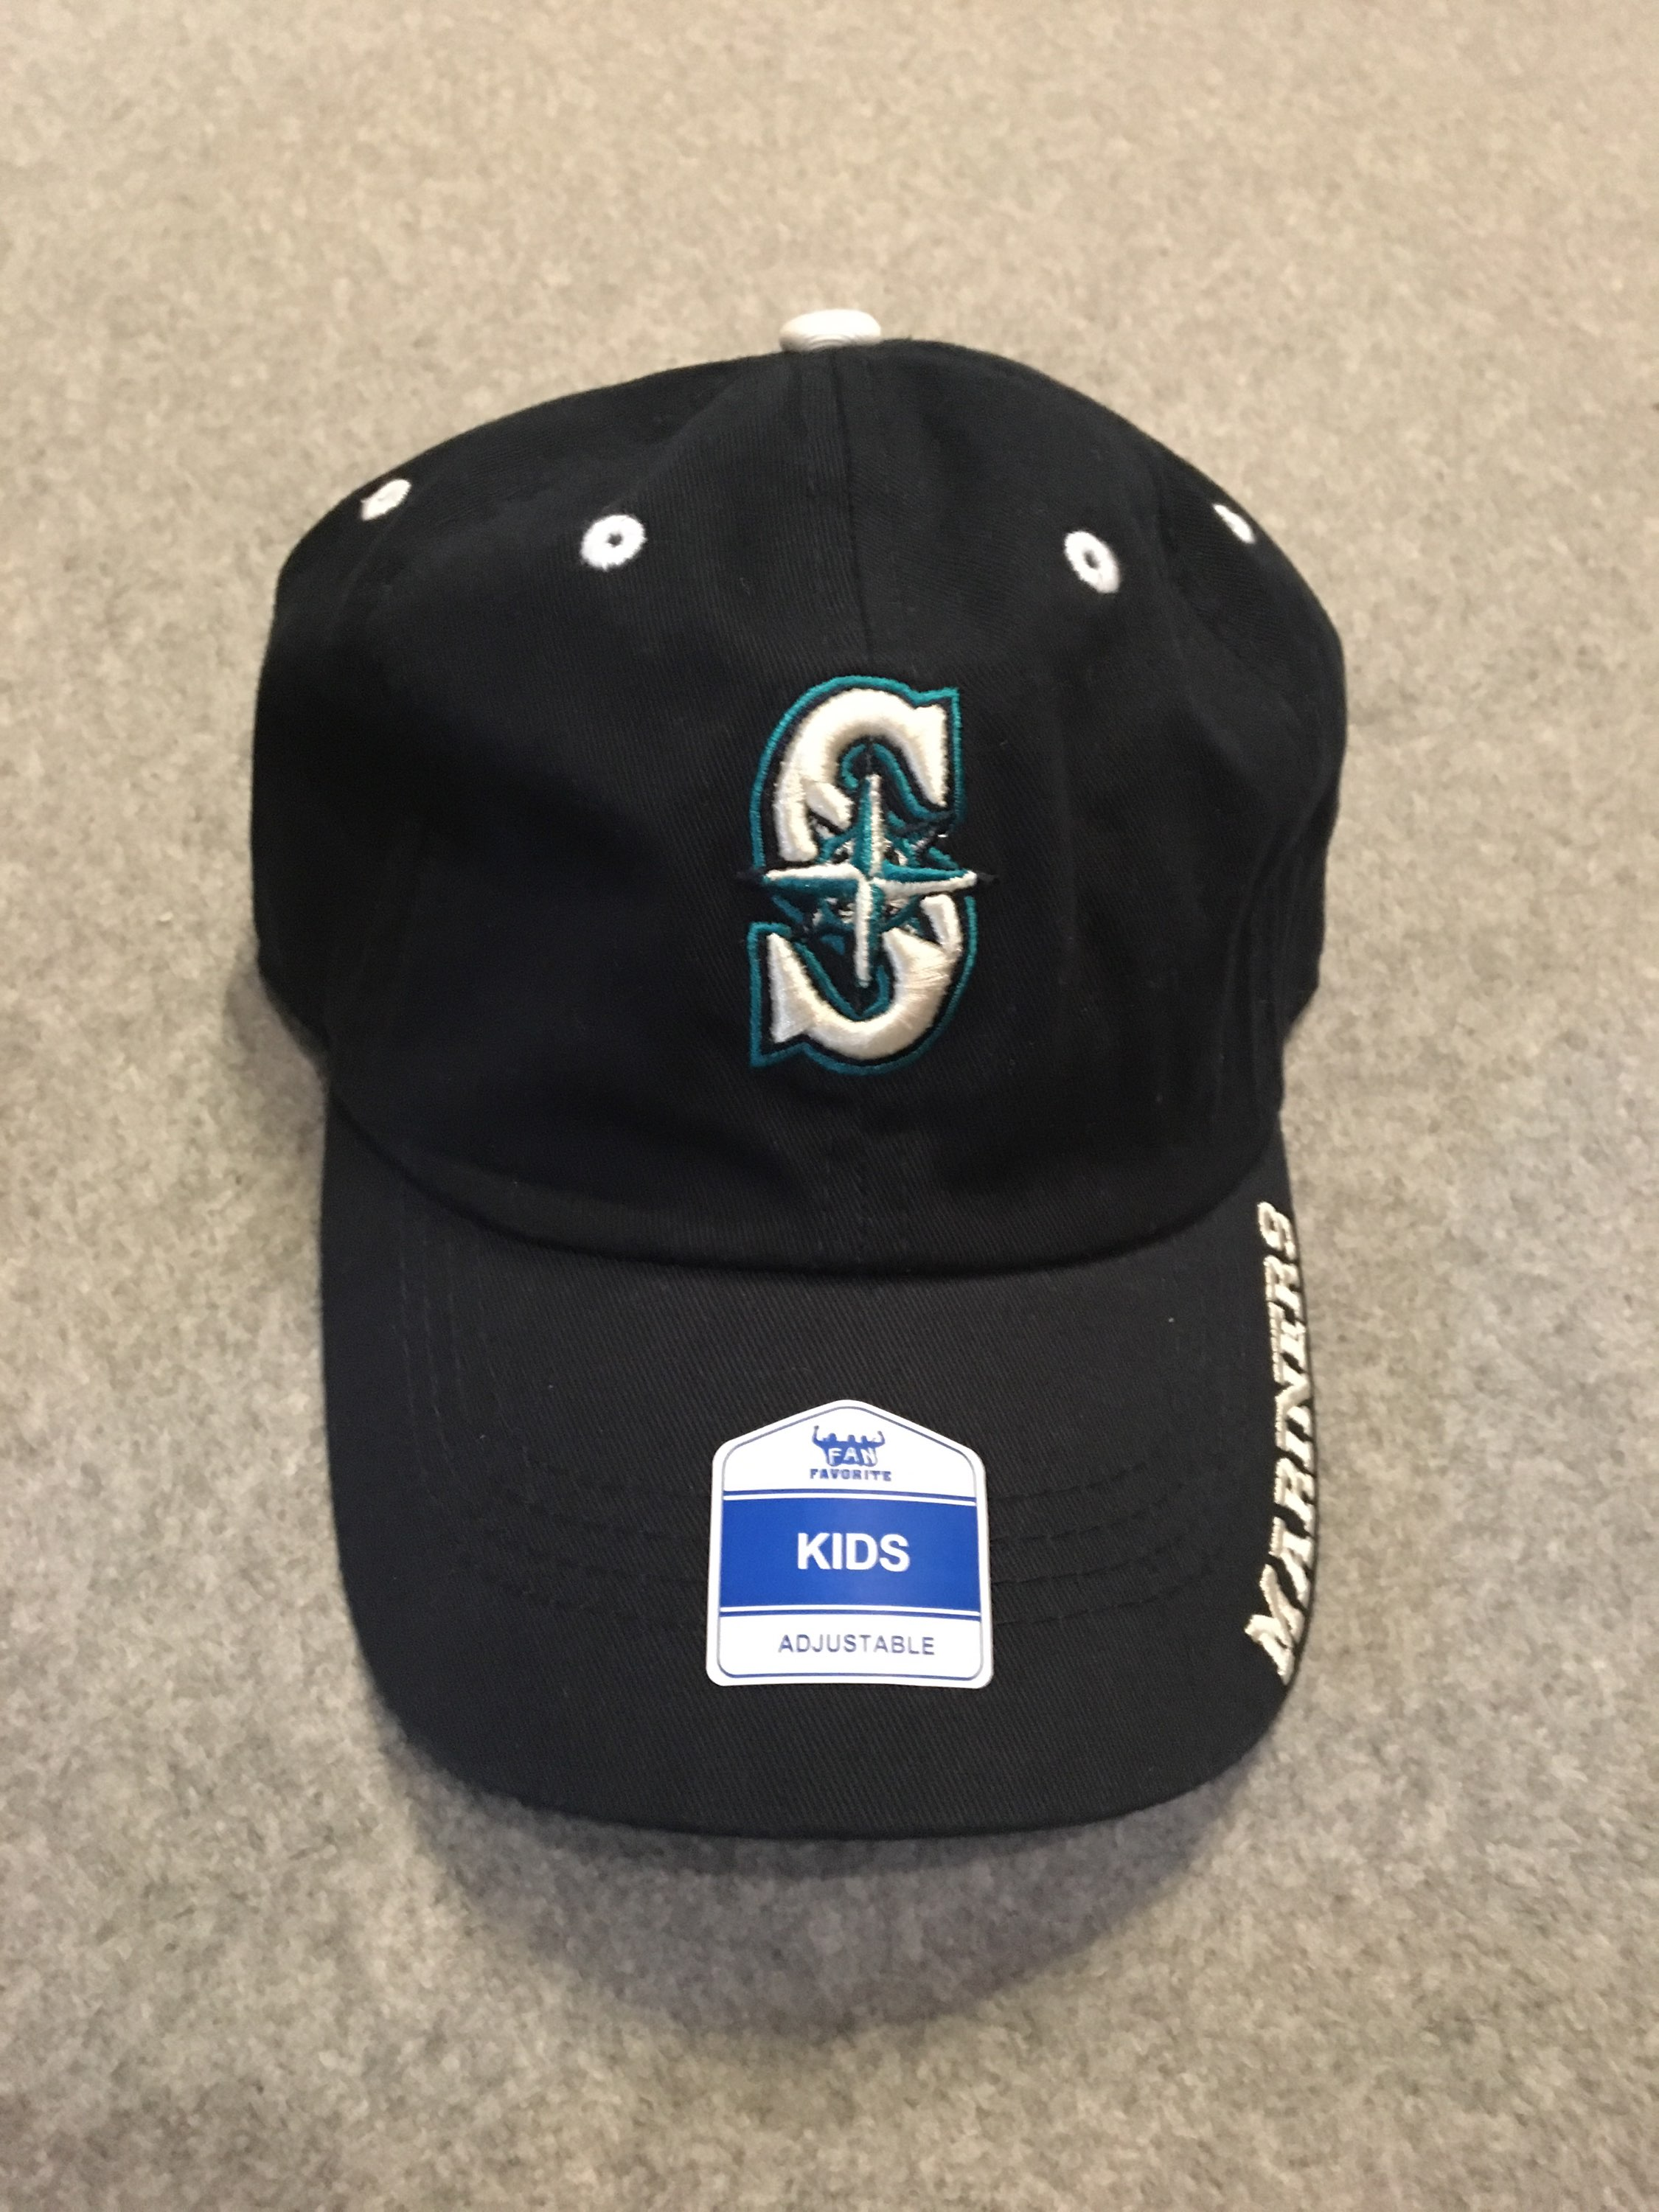 Youth Mariners Adjustable hat